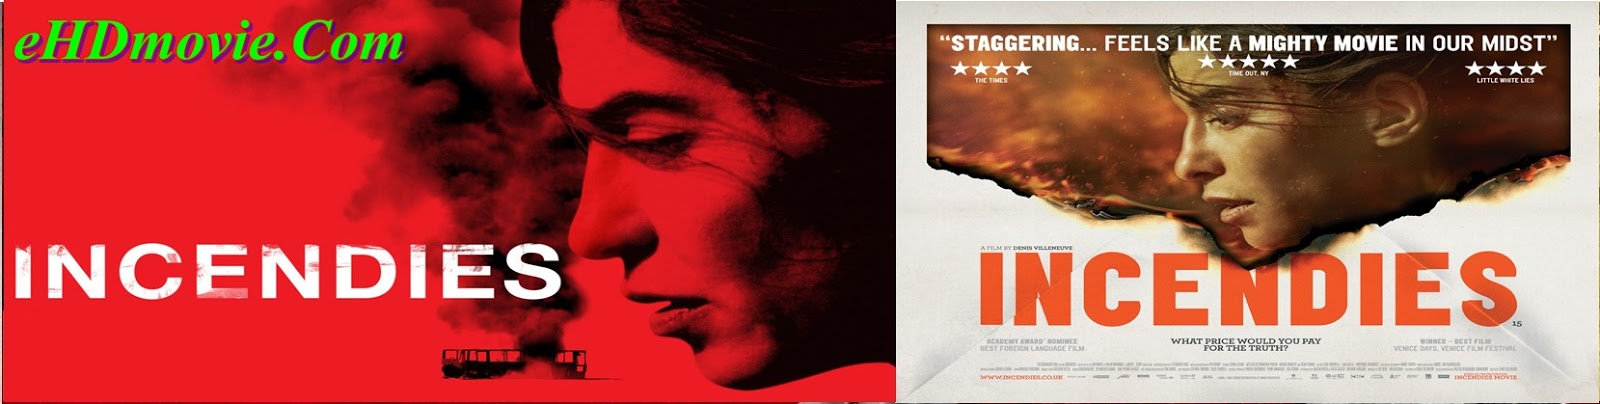 Incendies 2010 Full Movie English 720p - 480p ORG BRRip 450MB - 1GB ESubs Free Download